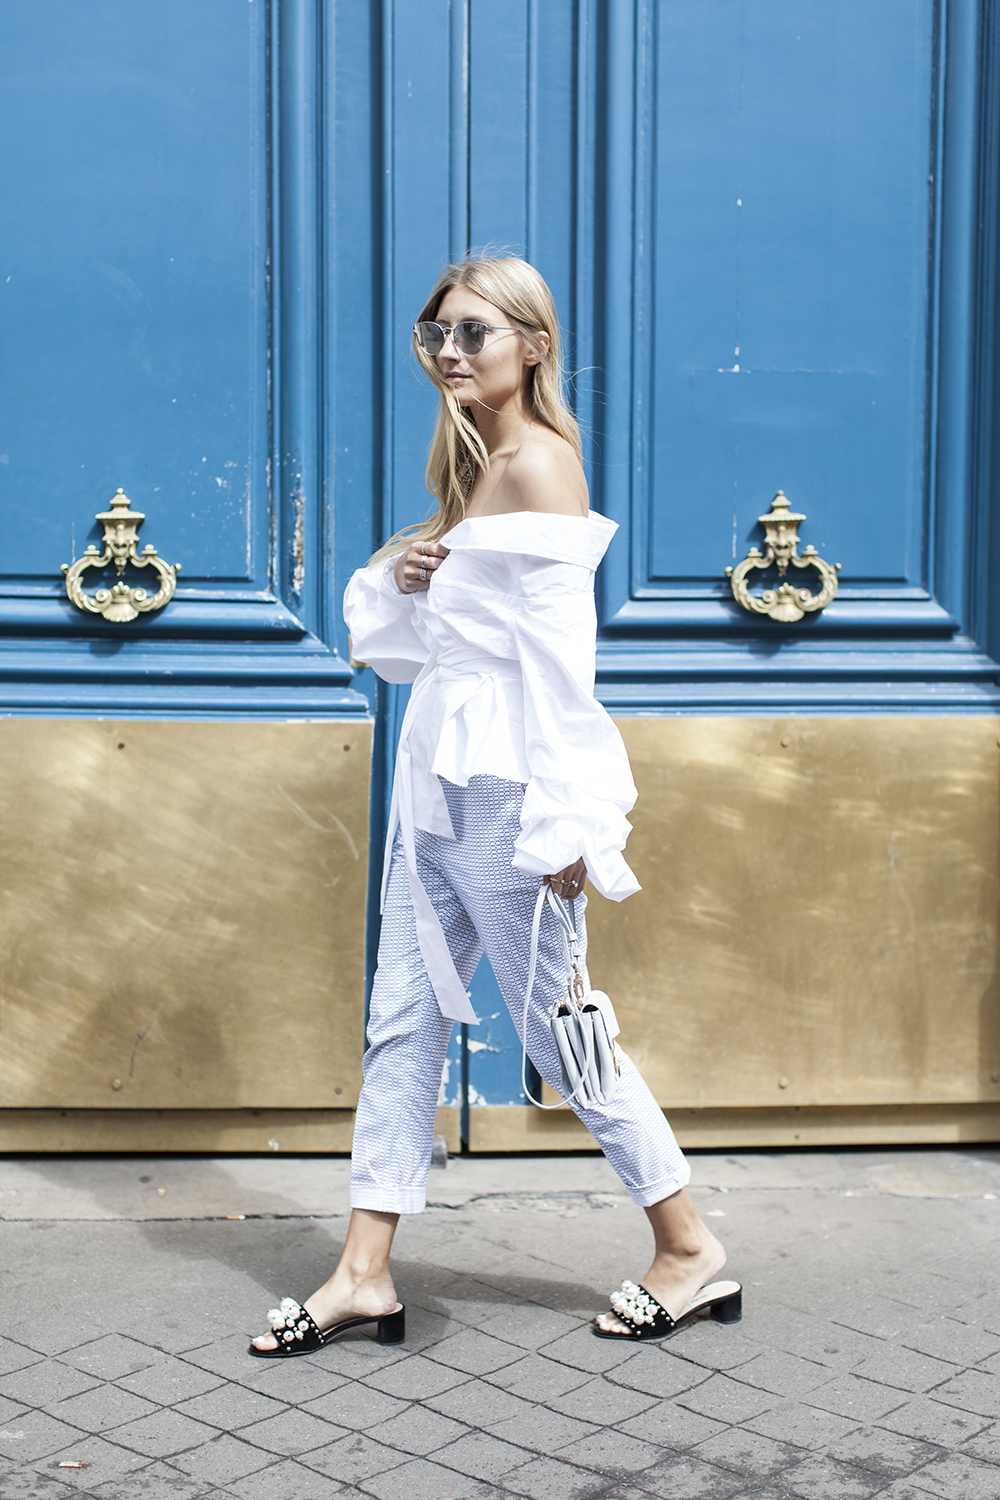 coccinelle bag, miu miu pearl slippers and lacoste pants